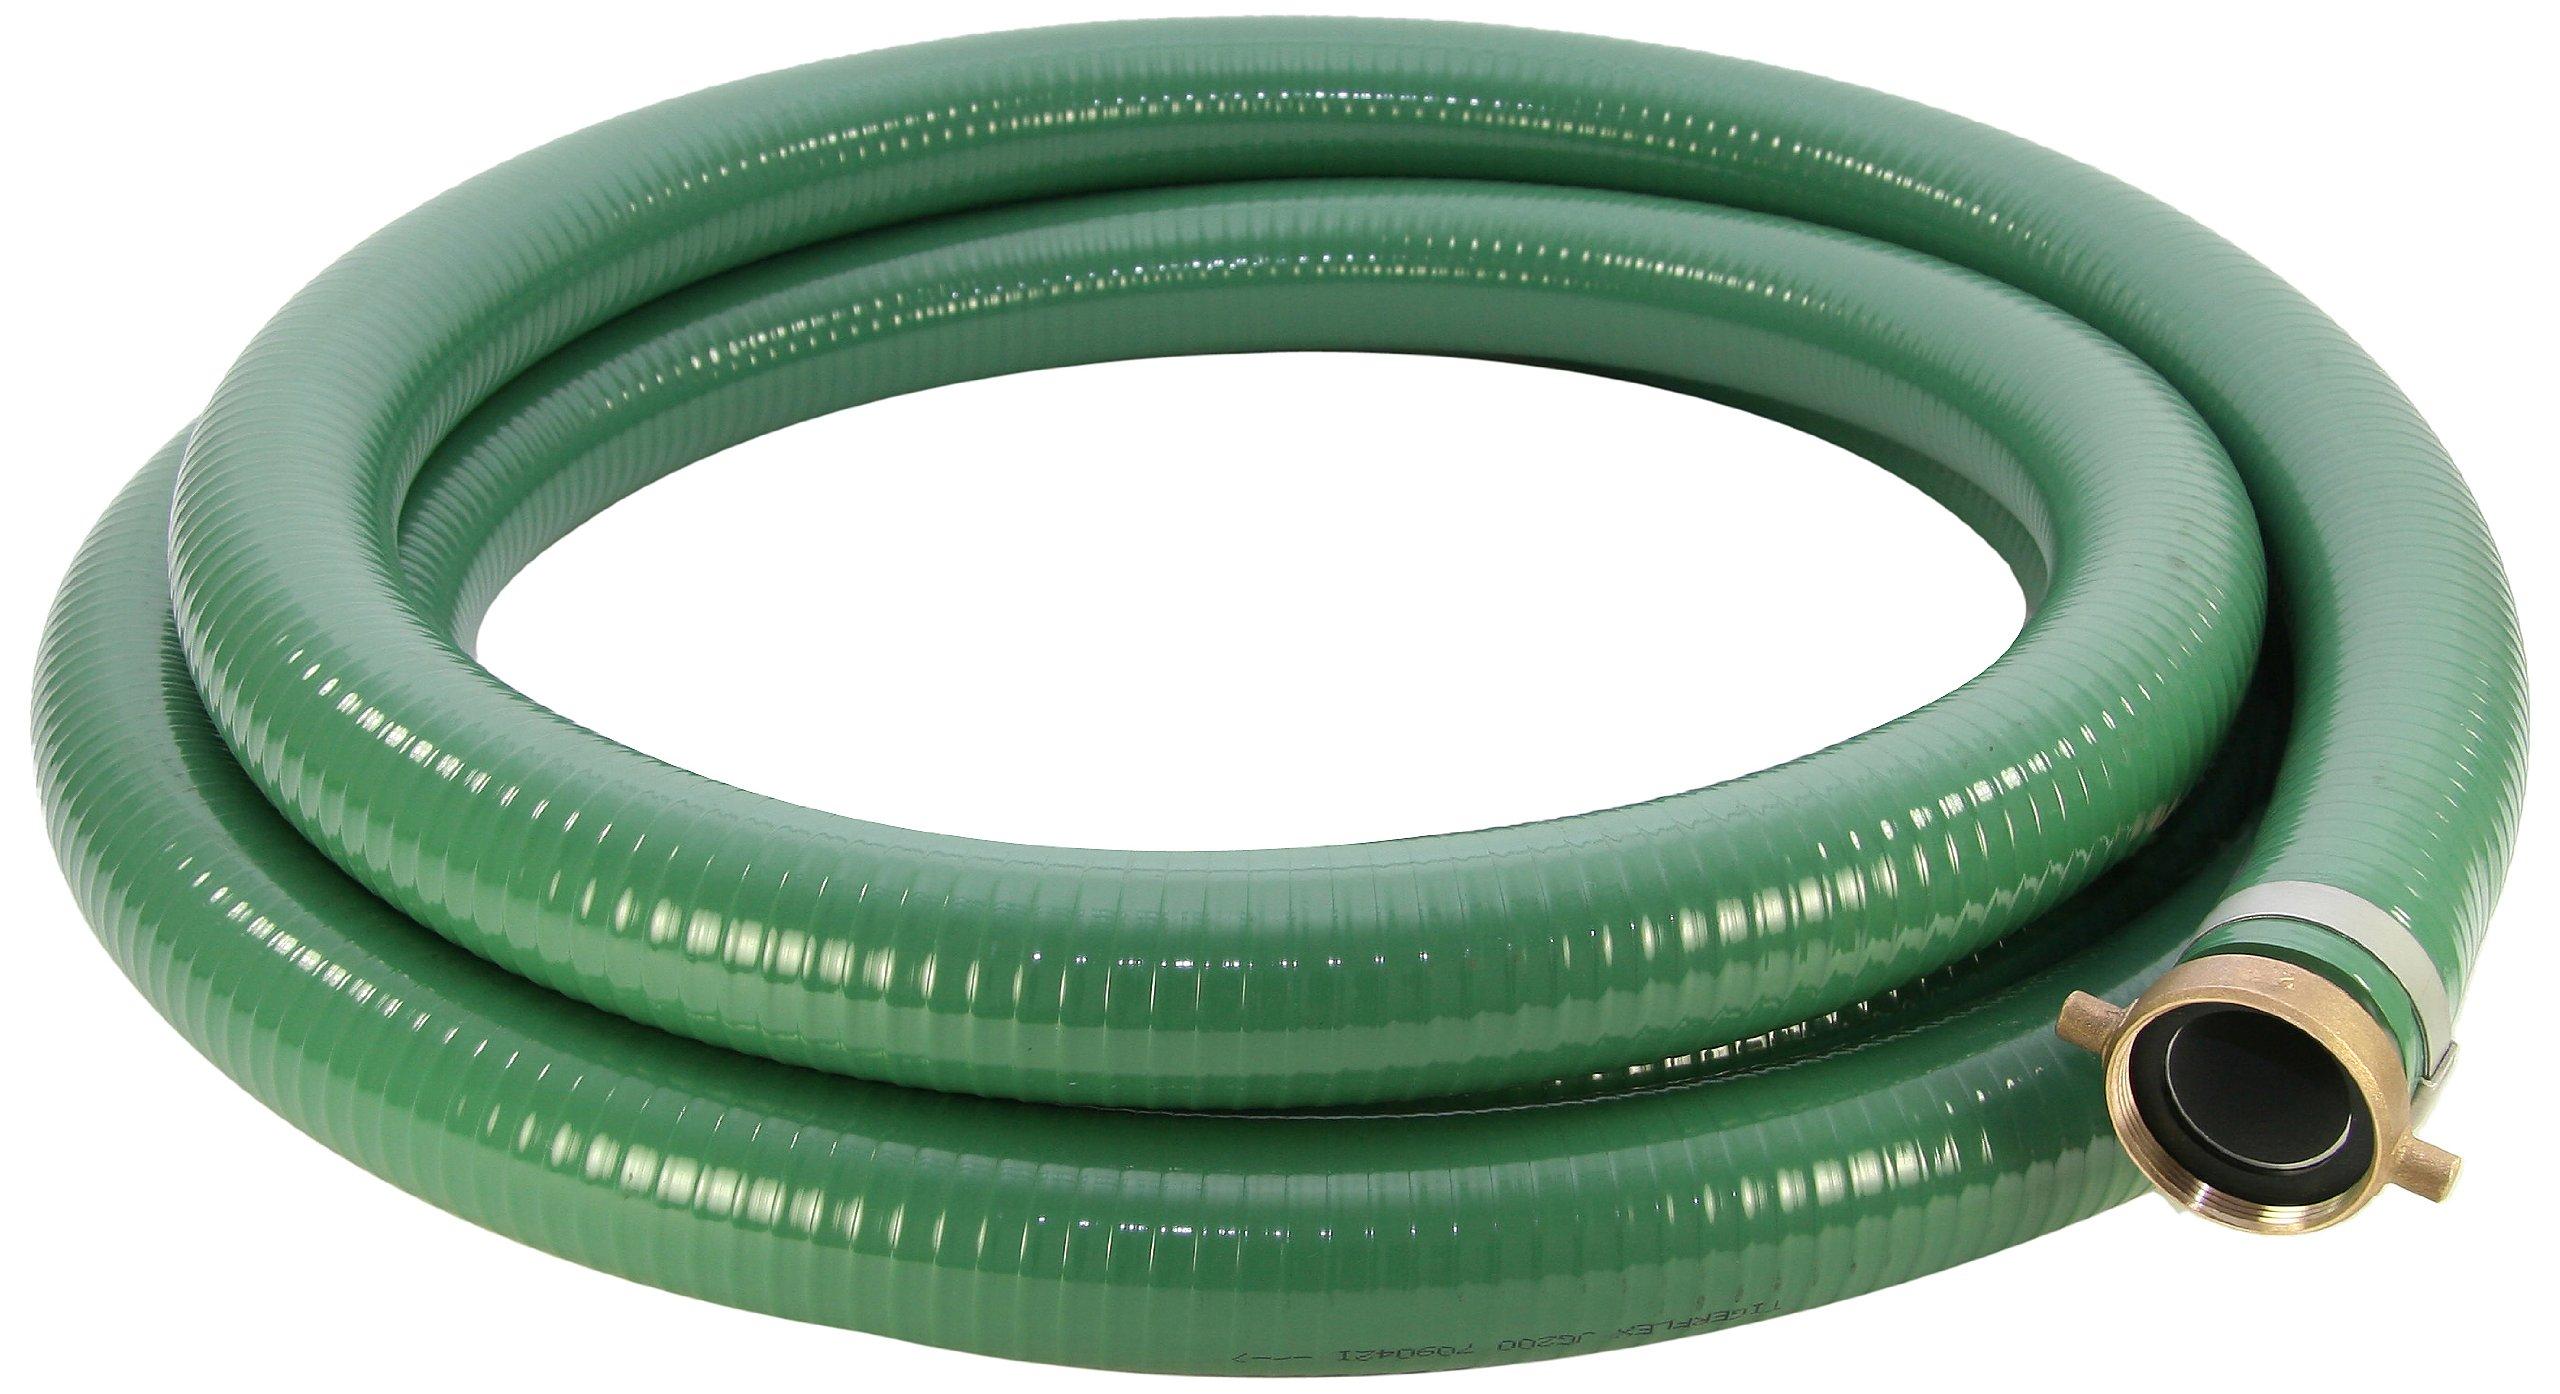 Abbott Rubber PVC Suction Hose Assembly, Green, 2'' Male X Female NPSM, 65 psi Max Pressure, 25' Length, 2'' ID